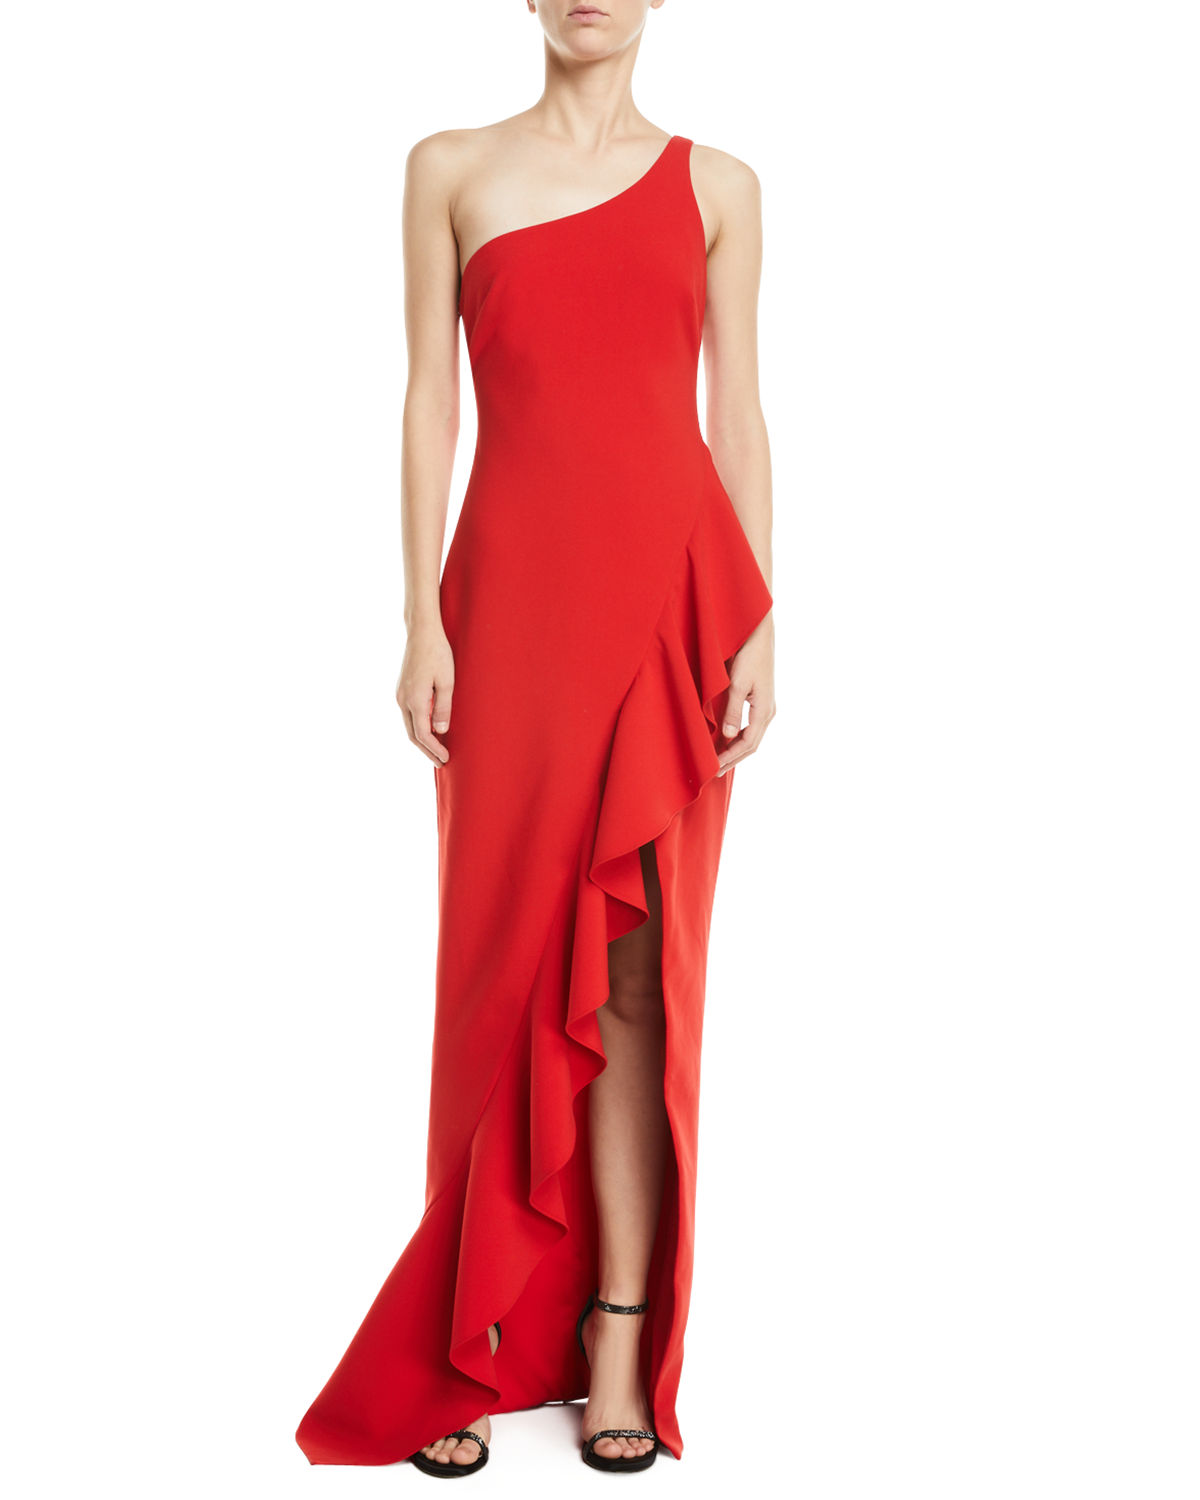 ea329cdf3da0 Likely Marielle Studded Sweetheart Gown   Neiman Marcus